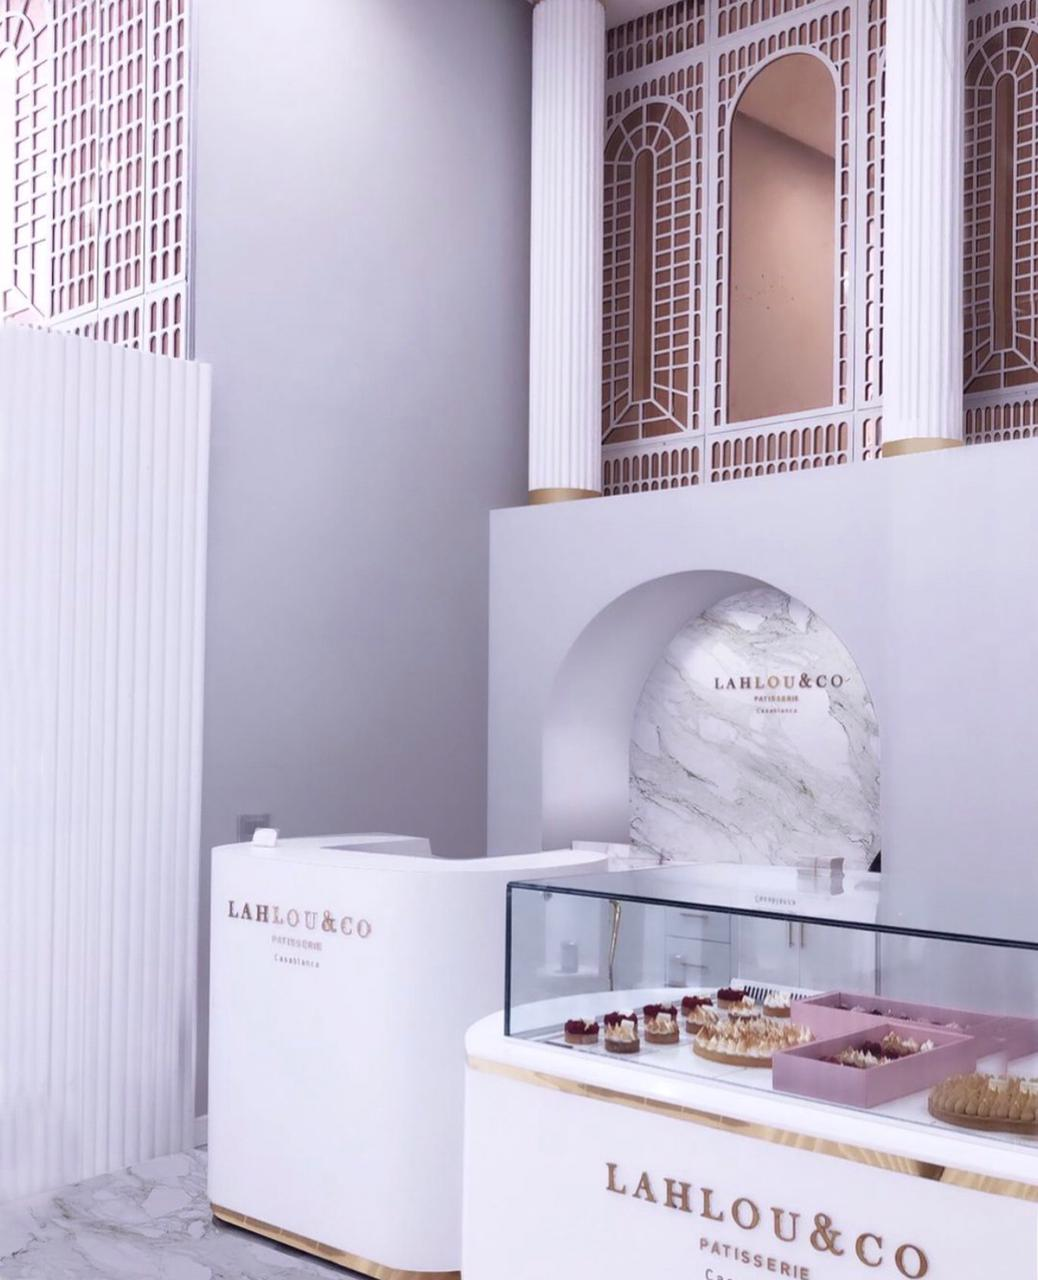 Lahlou & Co Patisserie